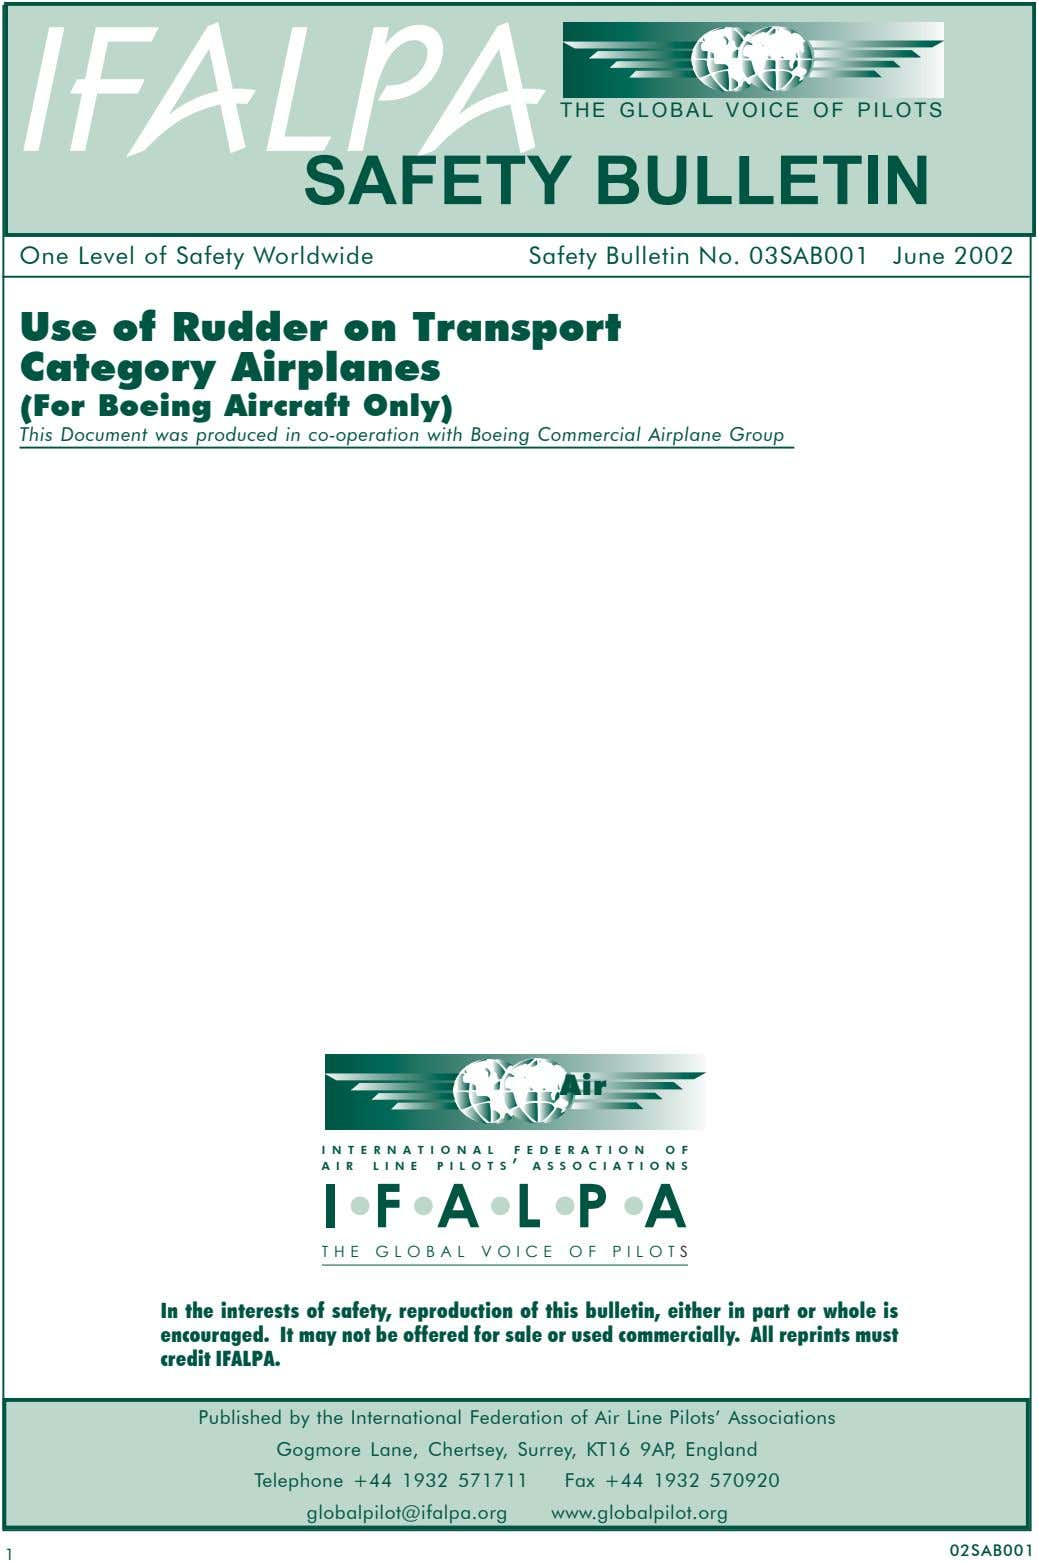 IFALPA THE GLOBAL VOICE OF PILOTS SAFETY BULLETIN One Level of Safety Worldwide Safety Bulletin